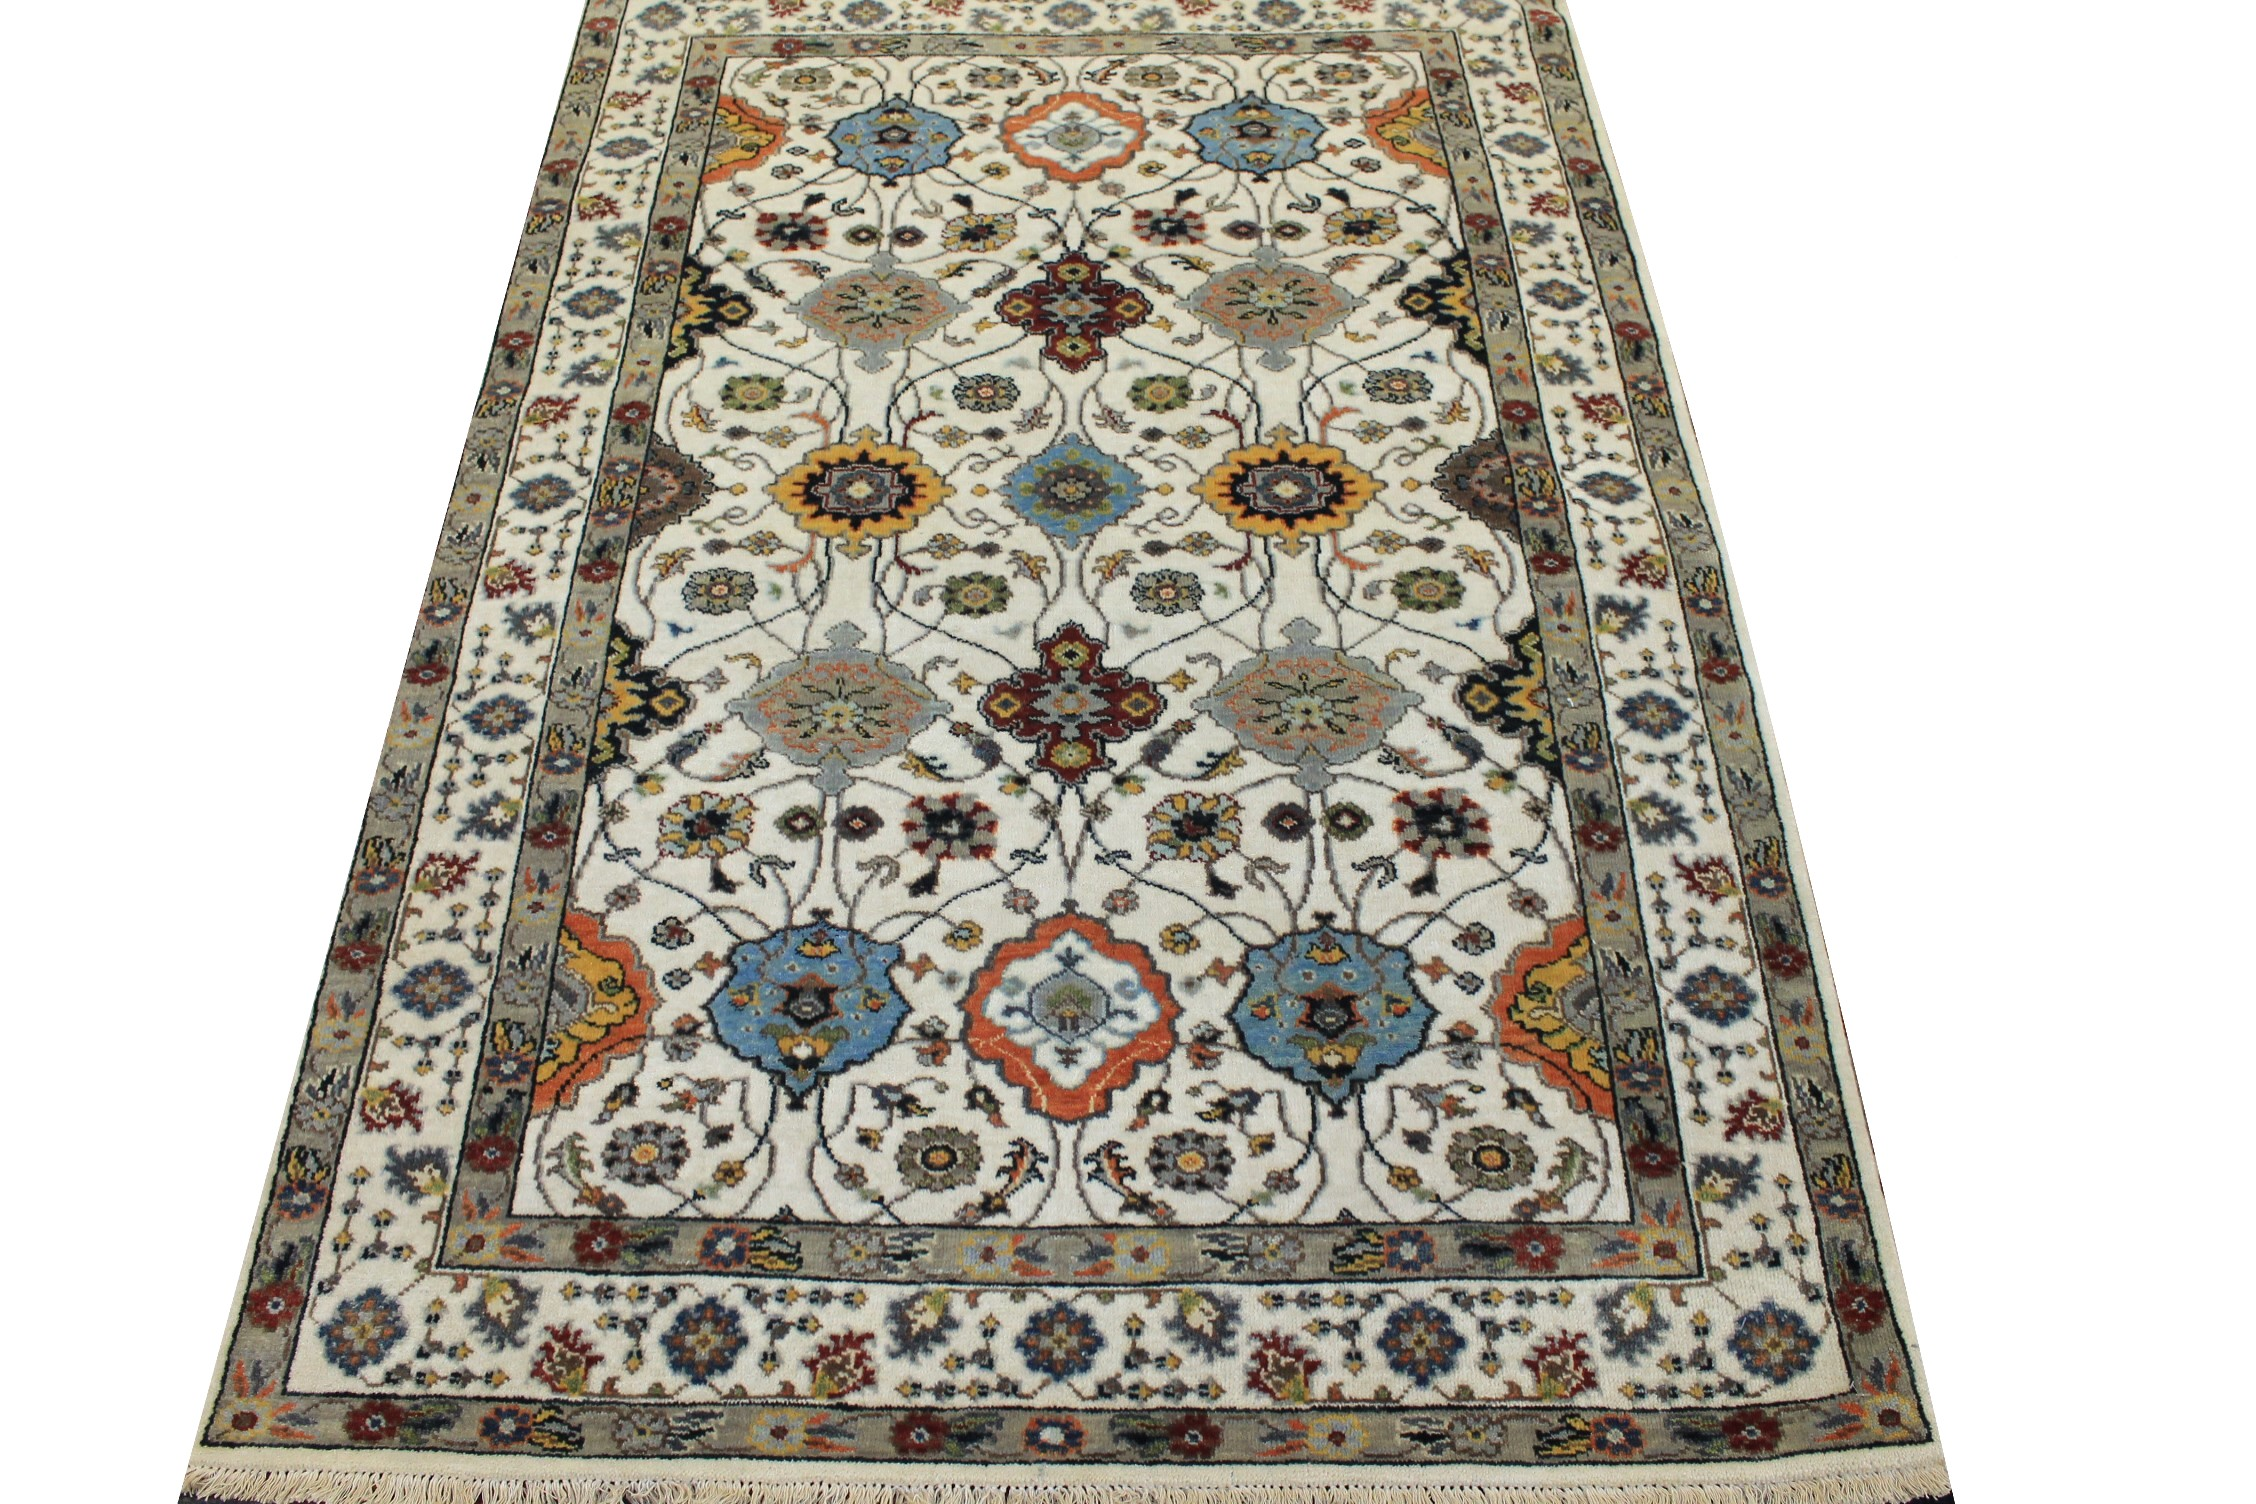 4x6 Traditional Hand Knotted Wool Area Rug - MR024976